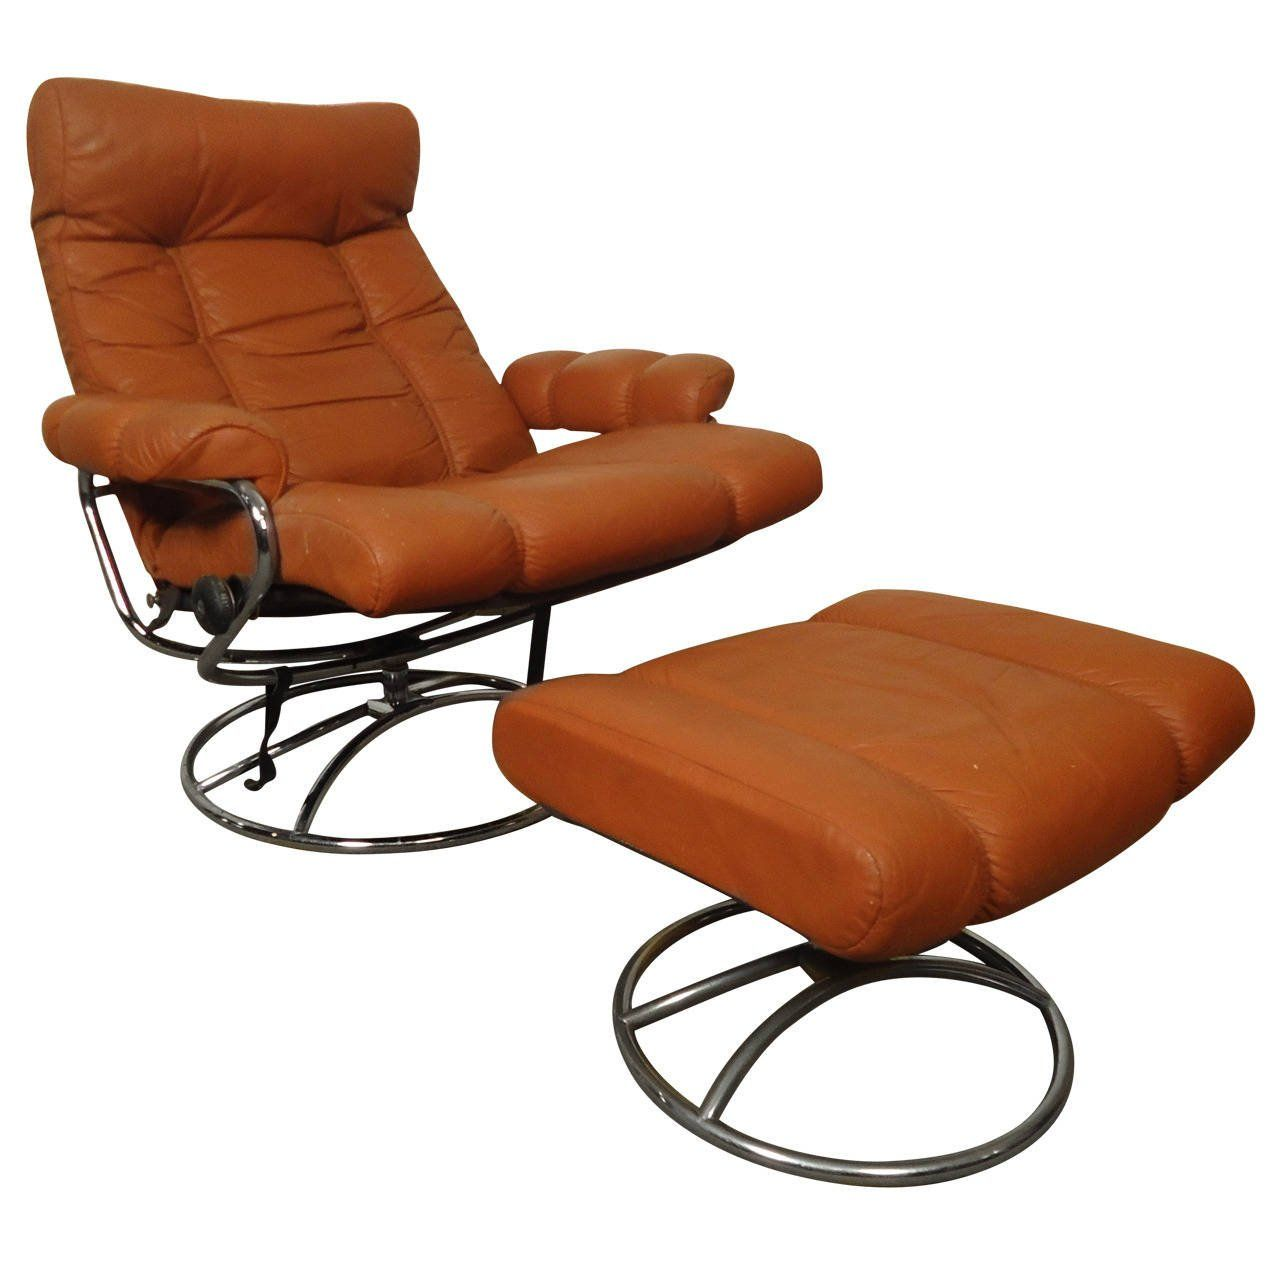 Midcentury reclining chair and ottoman by ekornes